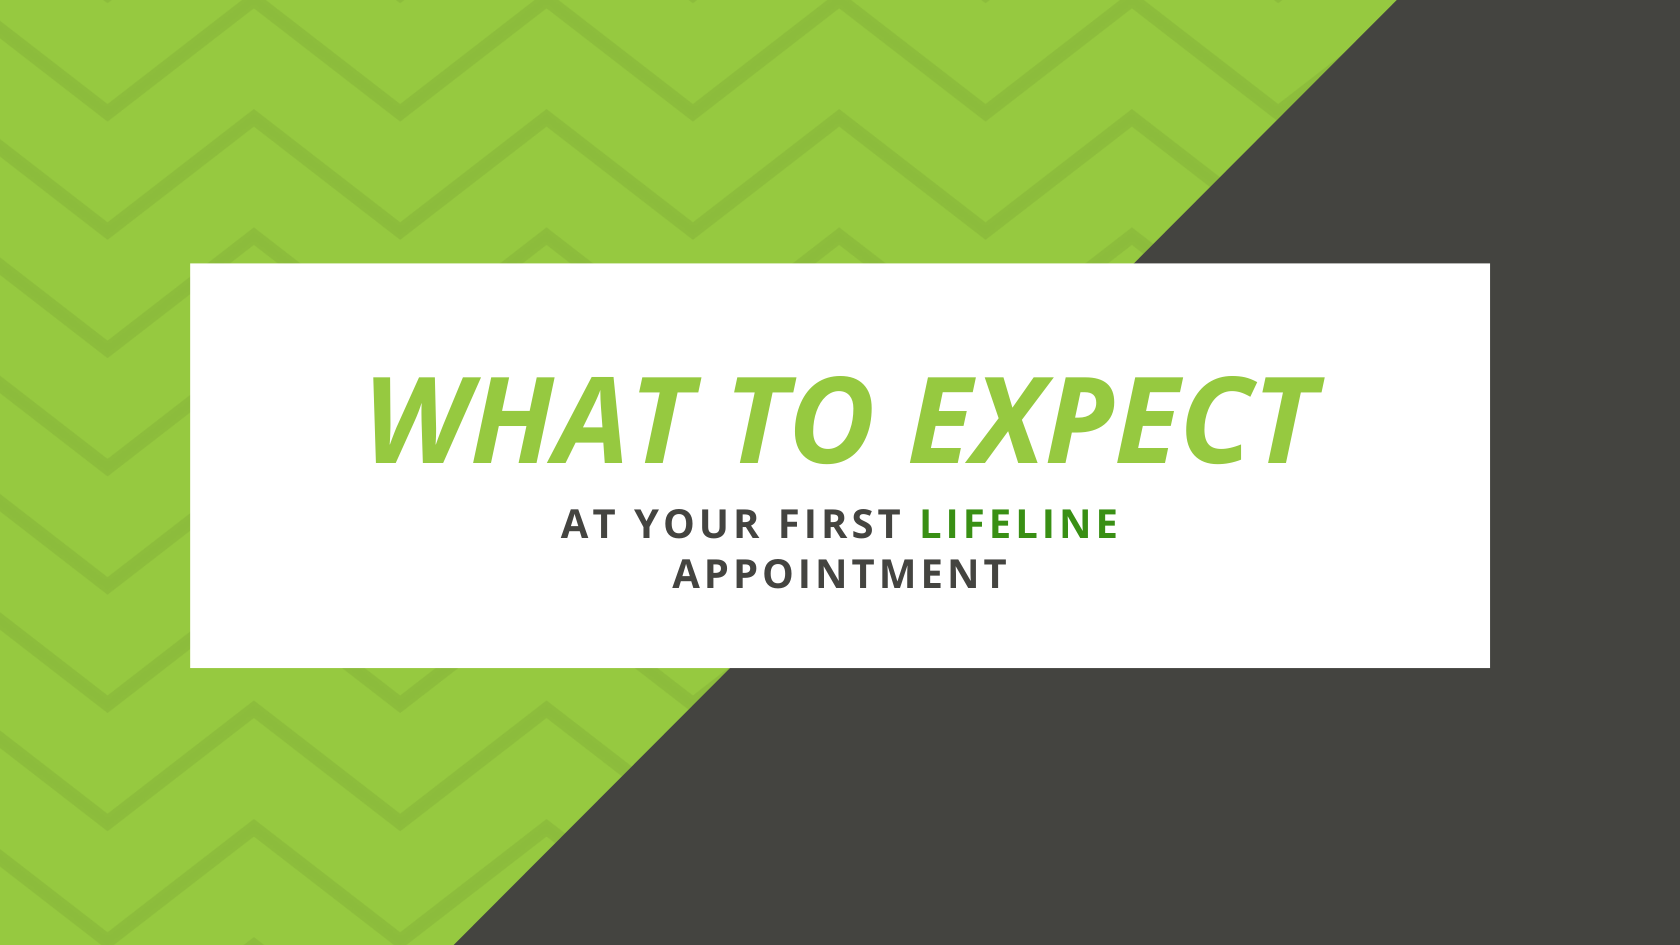 First Lifeline Appointment